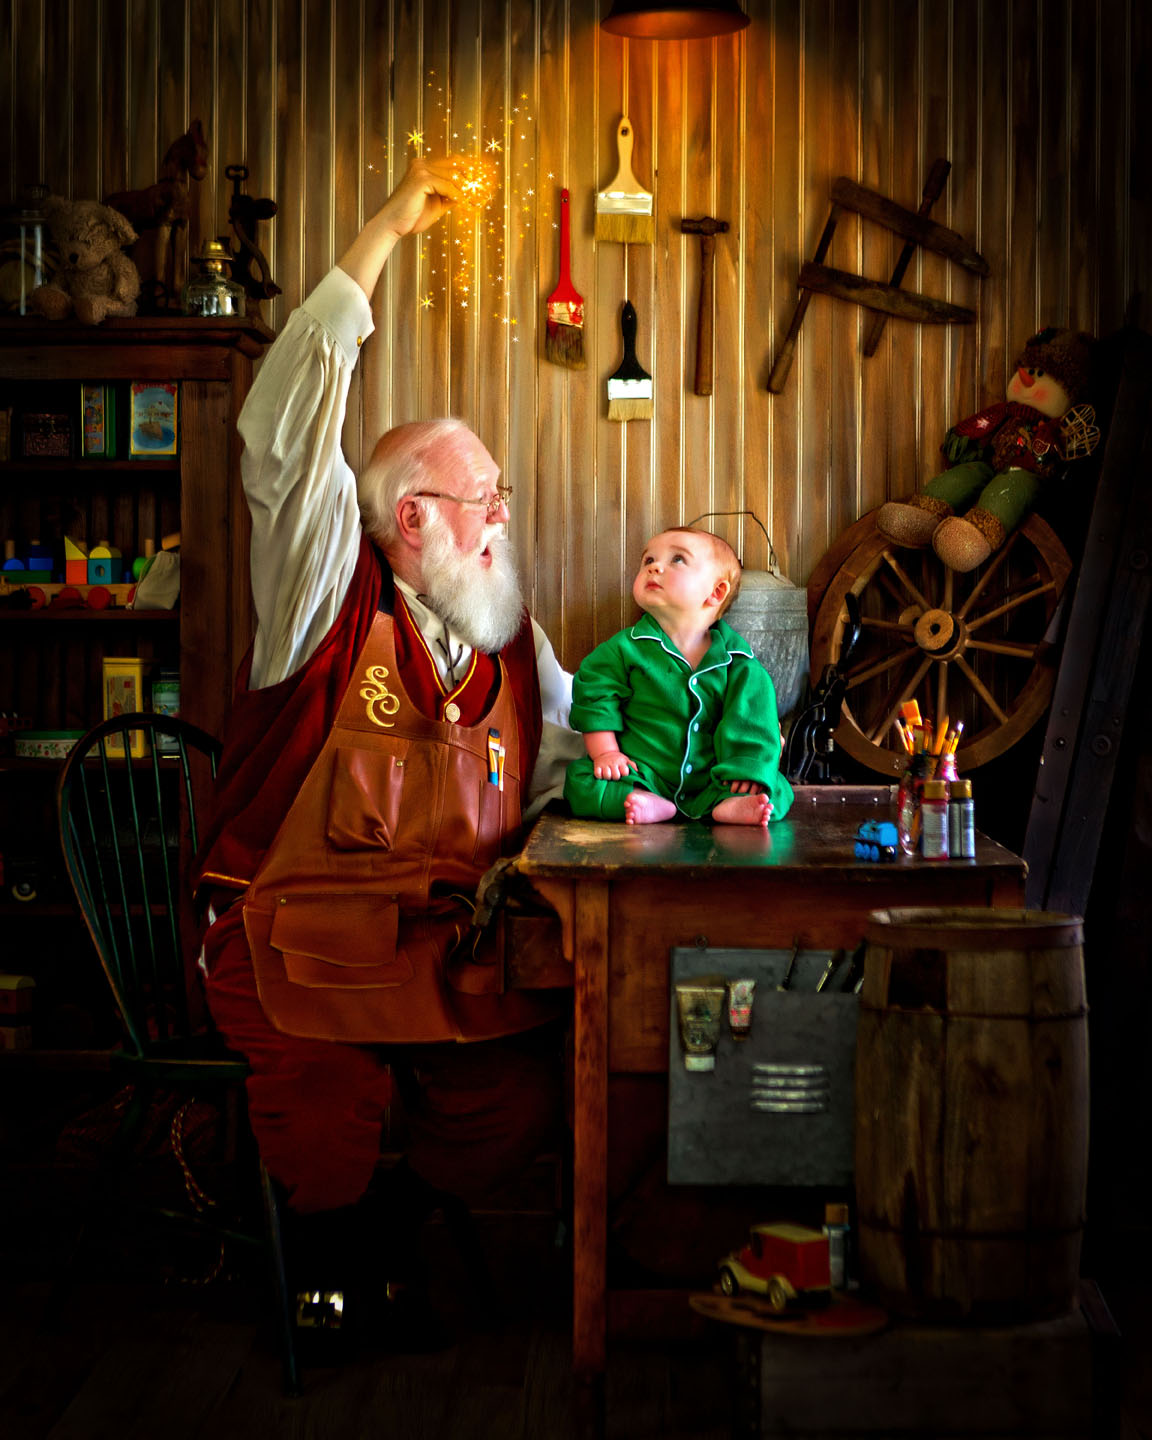 Santas Magical Workshop Portraits